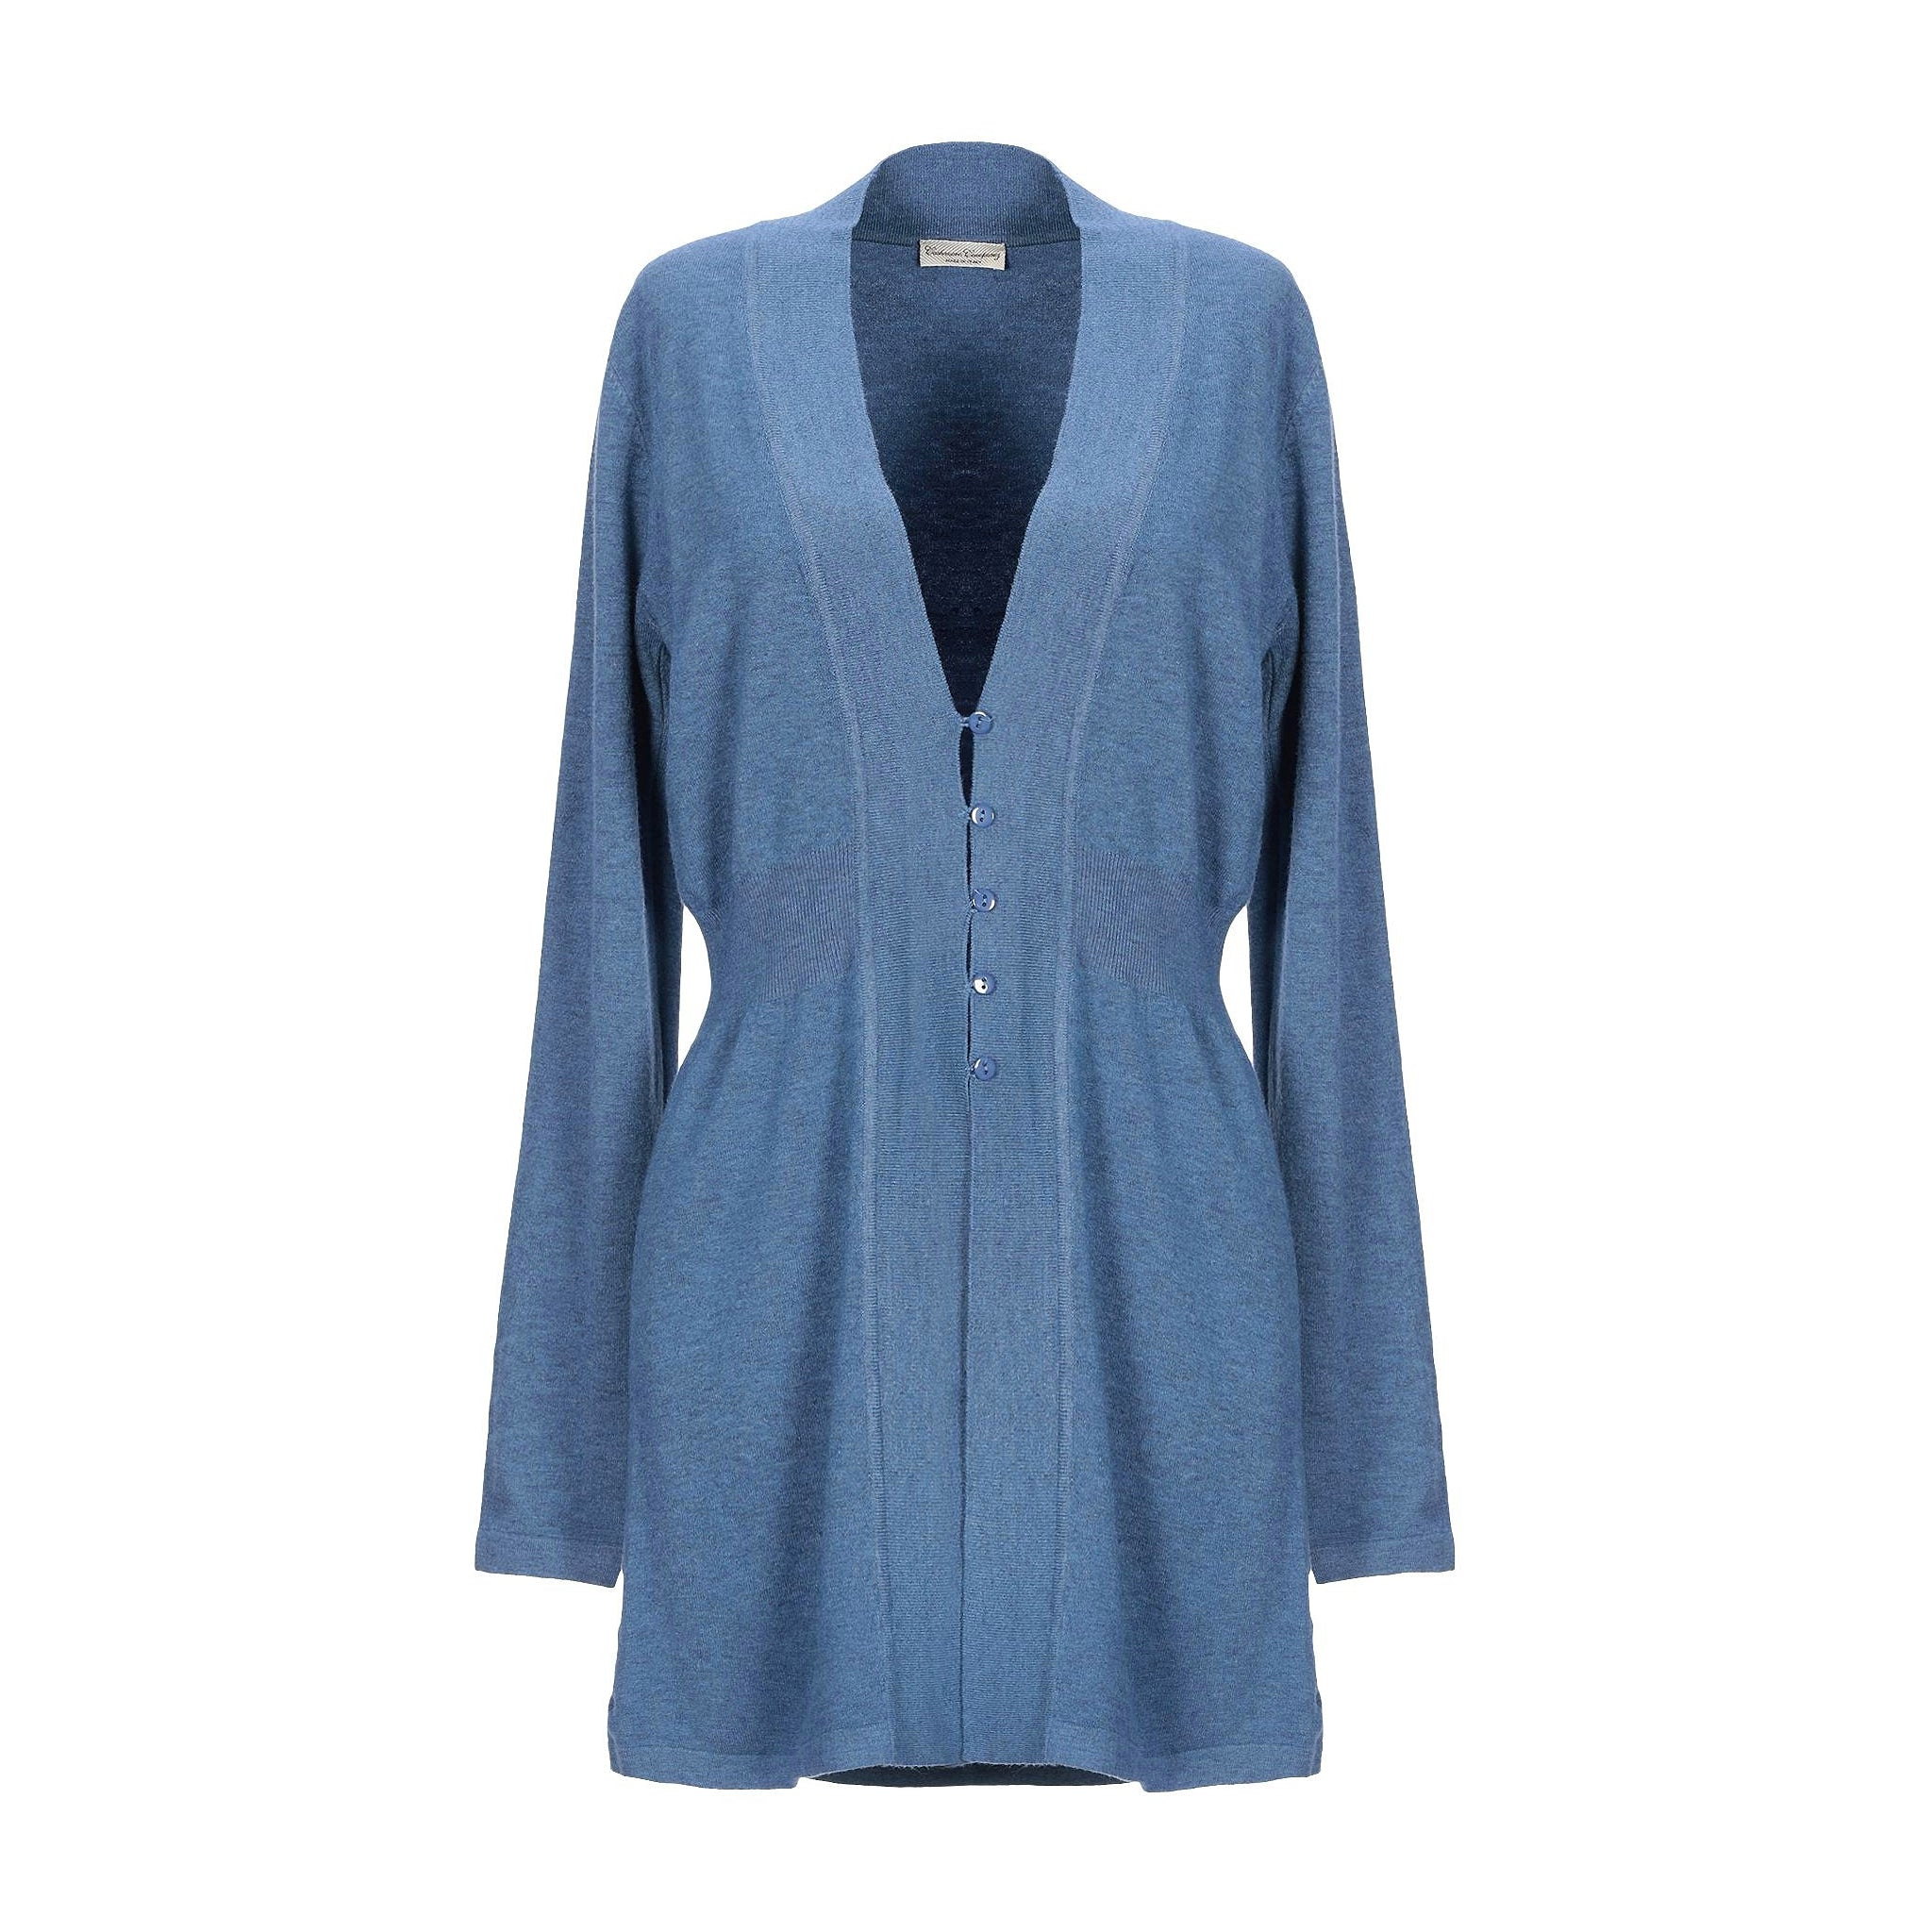 Cashmere Company Wool And Cashmere Cardigan